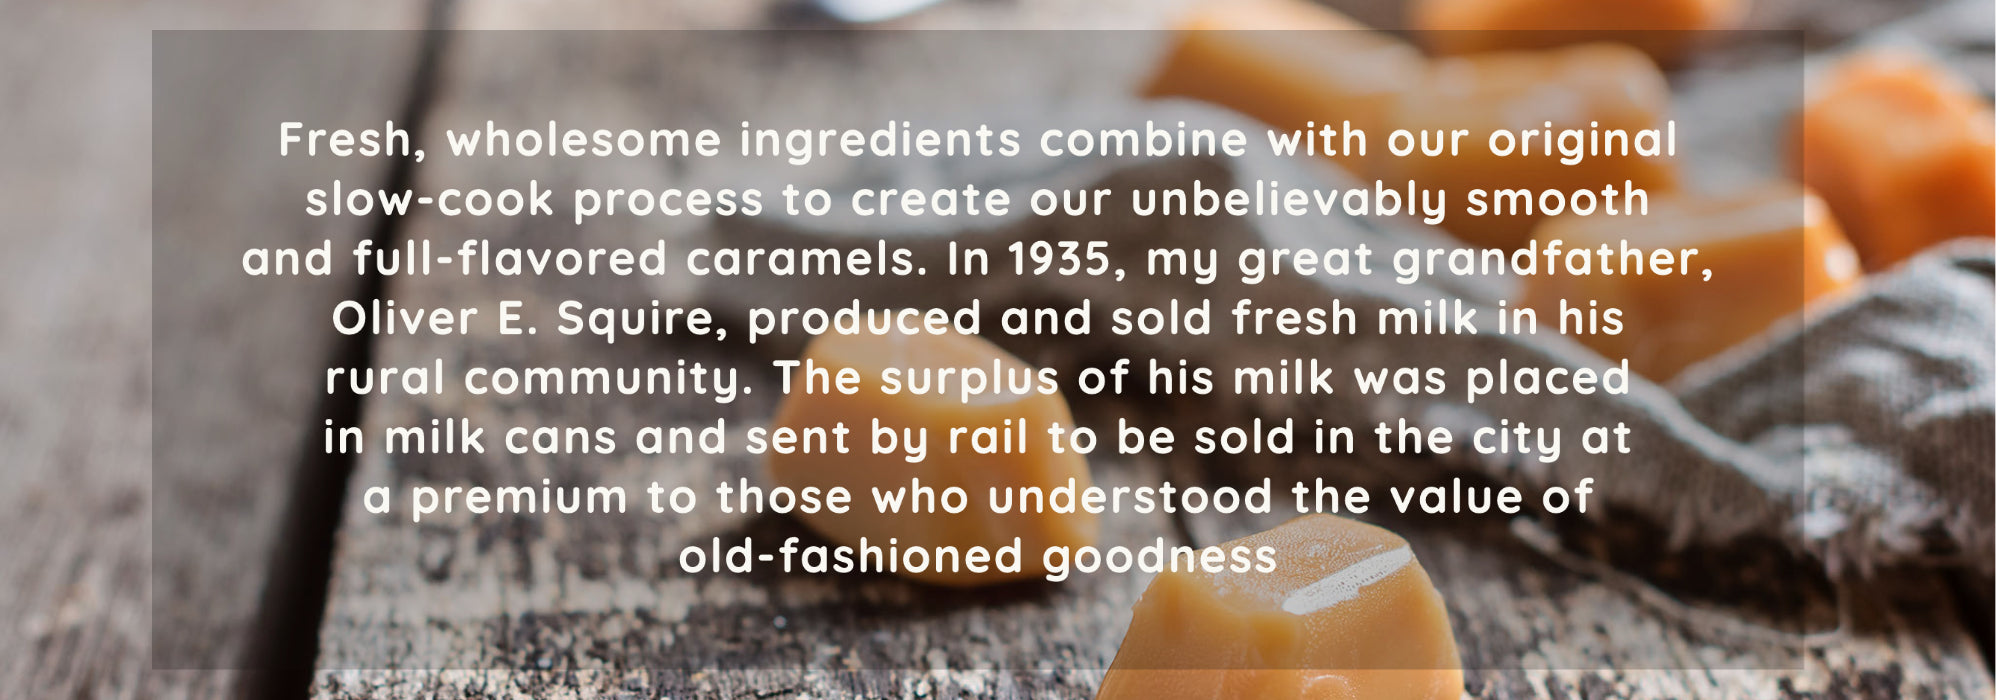 Fresh, wholesome ingredients combine with our original slow-cook process to create our unbelievably smooth and full-flavored caramels. In 1935, my great grandfather, Oliver E. Squire, produced and sold fresh milk in his rural community. The surplus of his milk was placed in milk cans and sent by rail to be sold in the city at a premium to those who understood the value of old-fashioned goodness